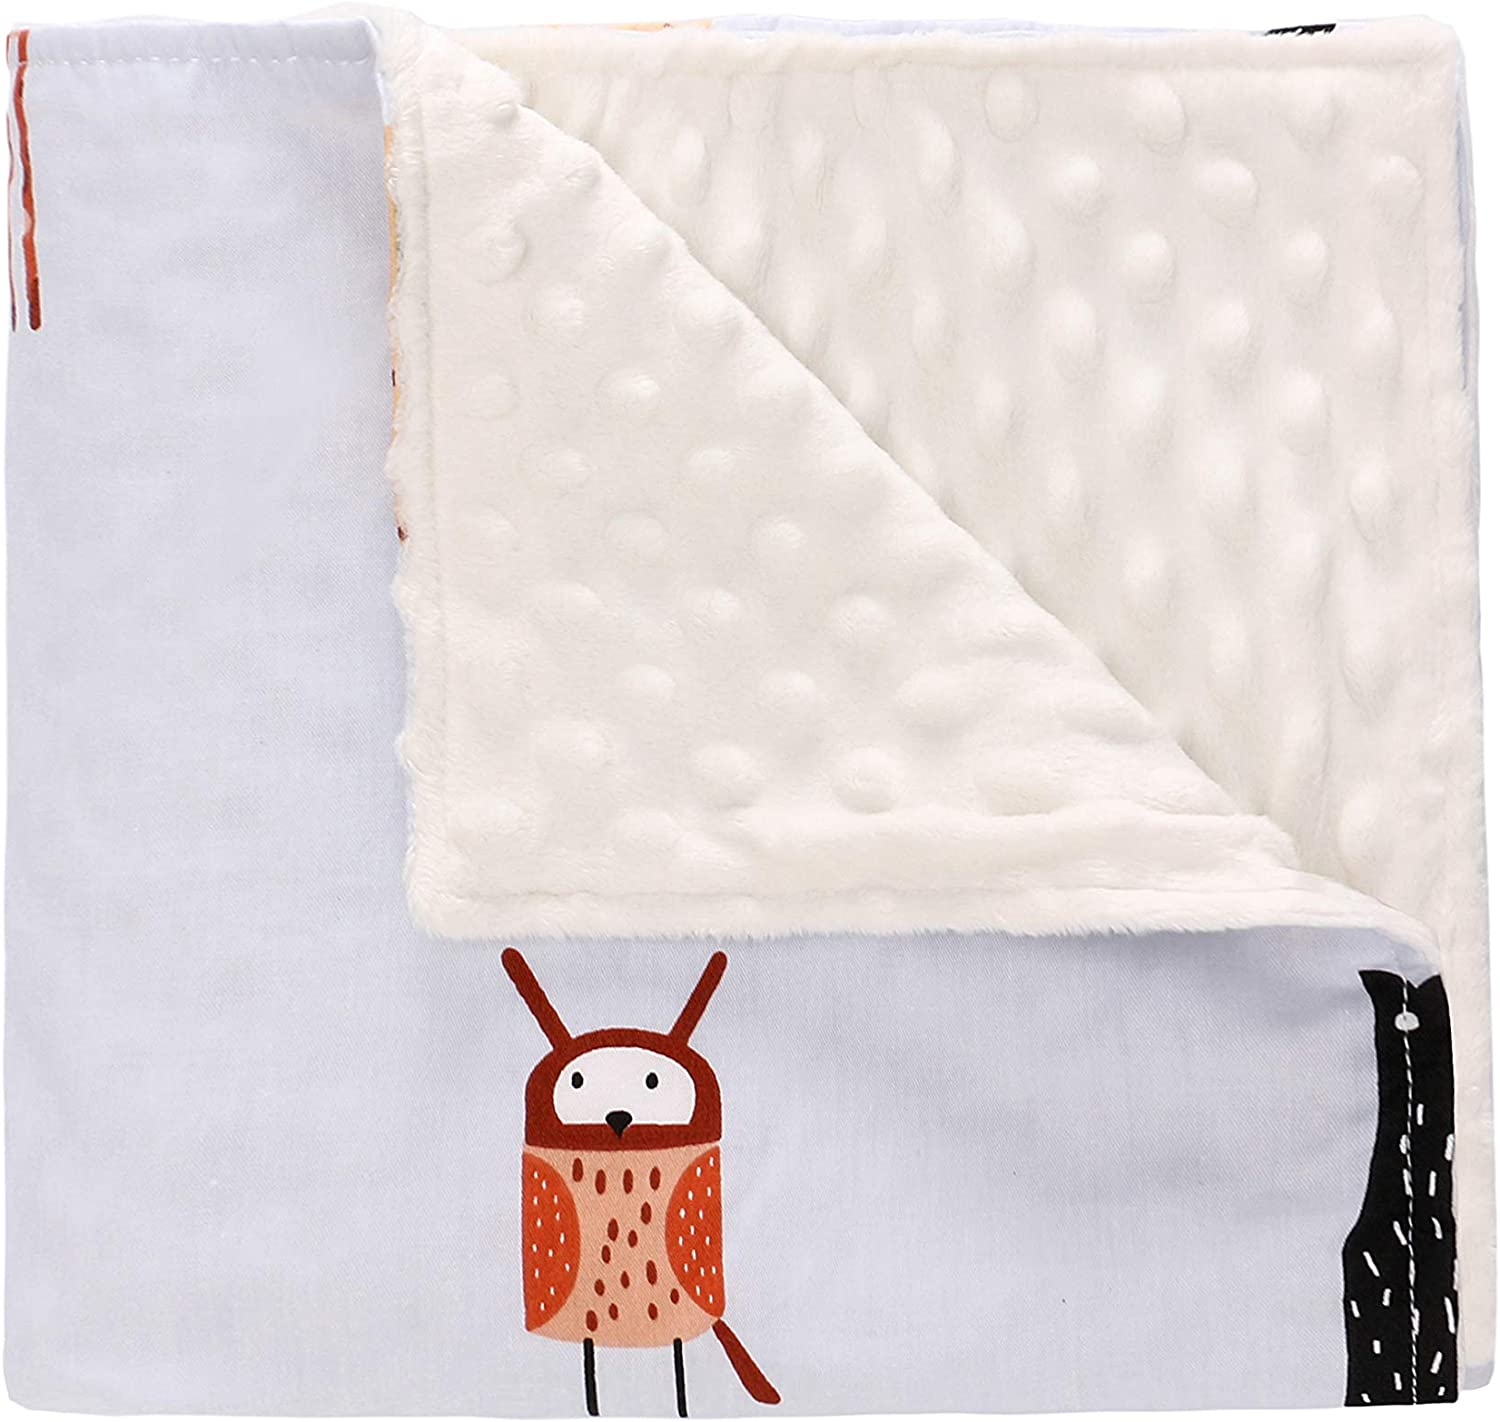 Small,Animals Soft Plush Lightweight Sensitive Skin for Newborn Boys Girls 78 * 102 Miracle Baby Blanket Minky Dot 9 Colors Cotton Double Layer